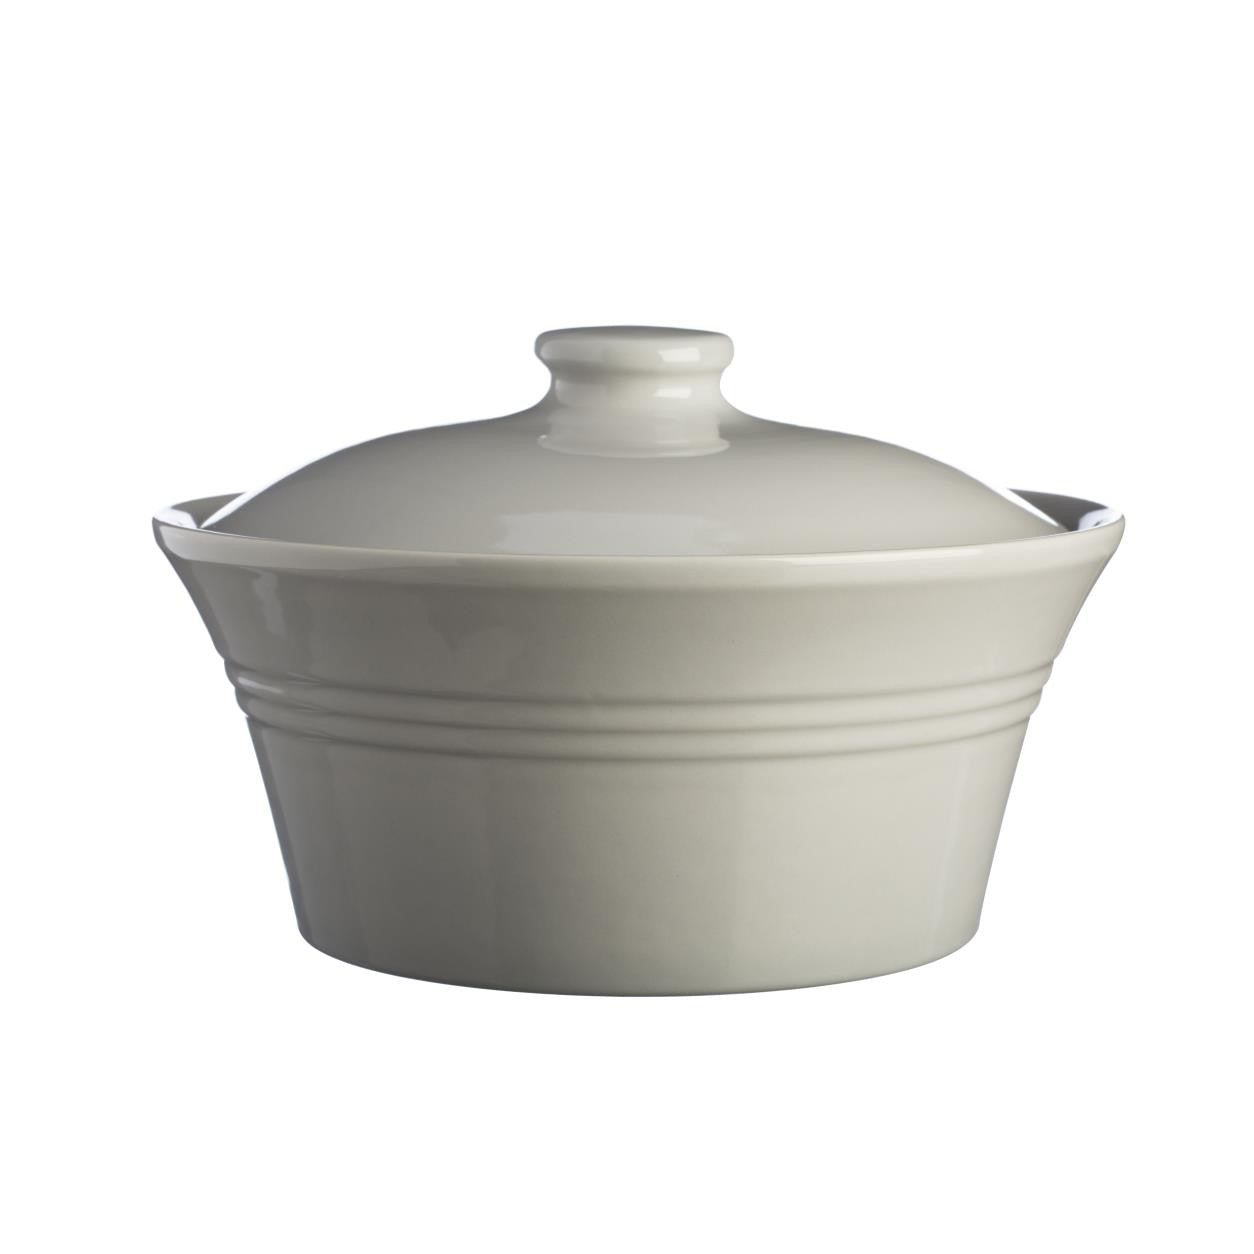 MASON CASH : McWilliam Casserole dish